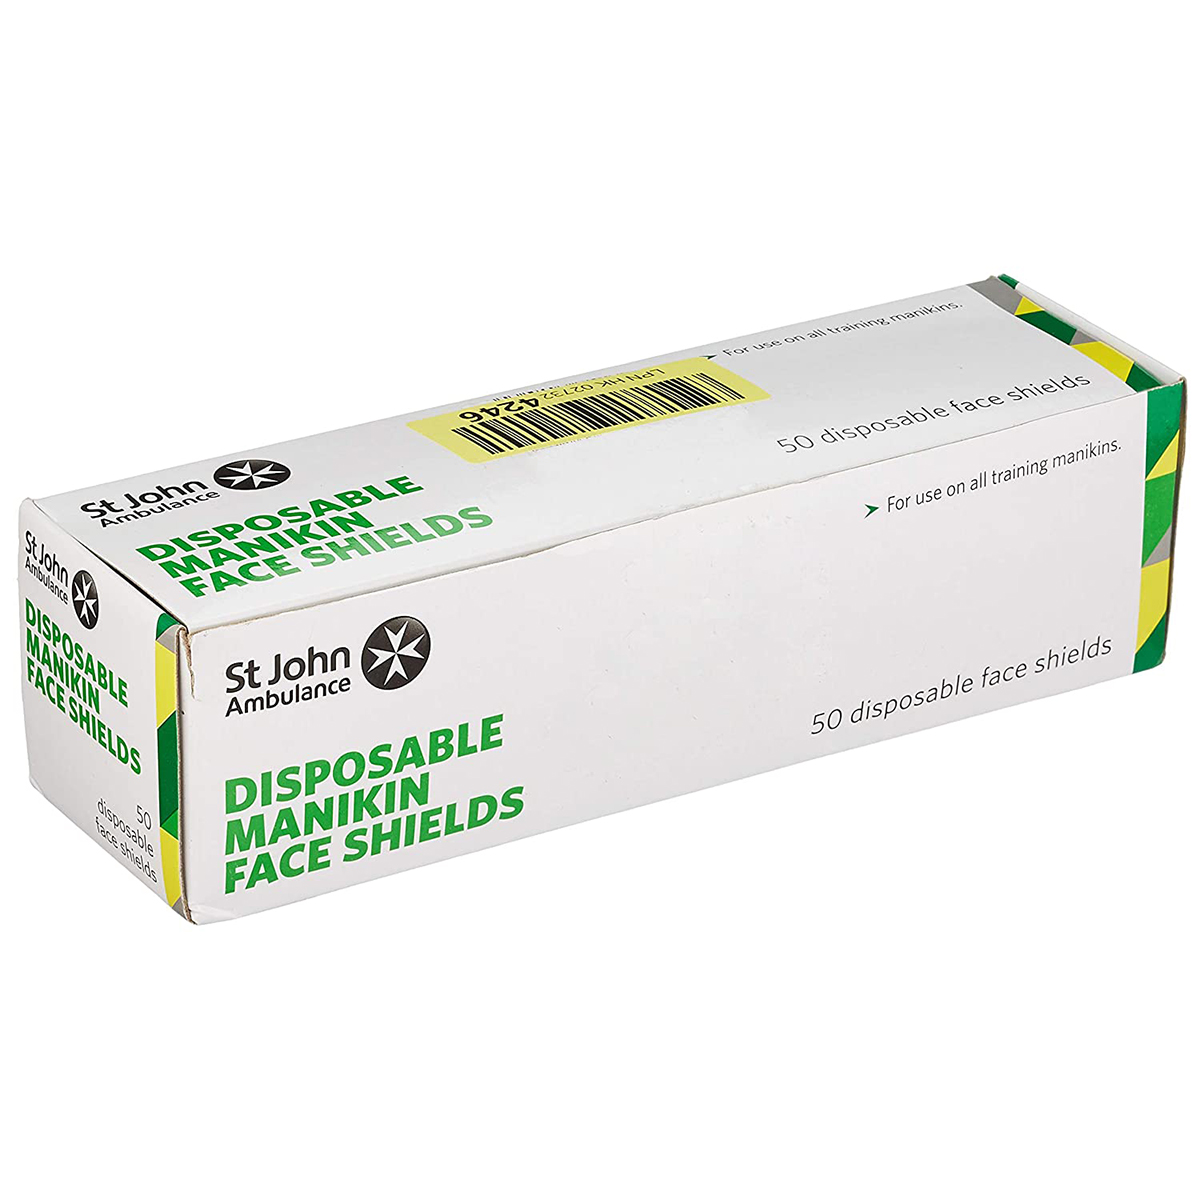 Roll of 50 St John Ambulance Disposable Face Shields